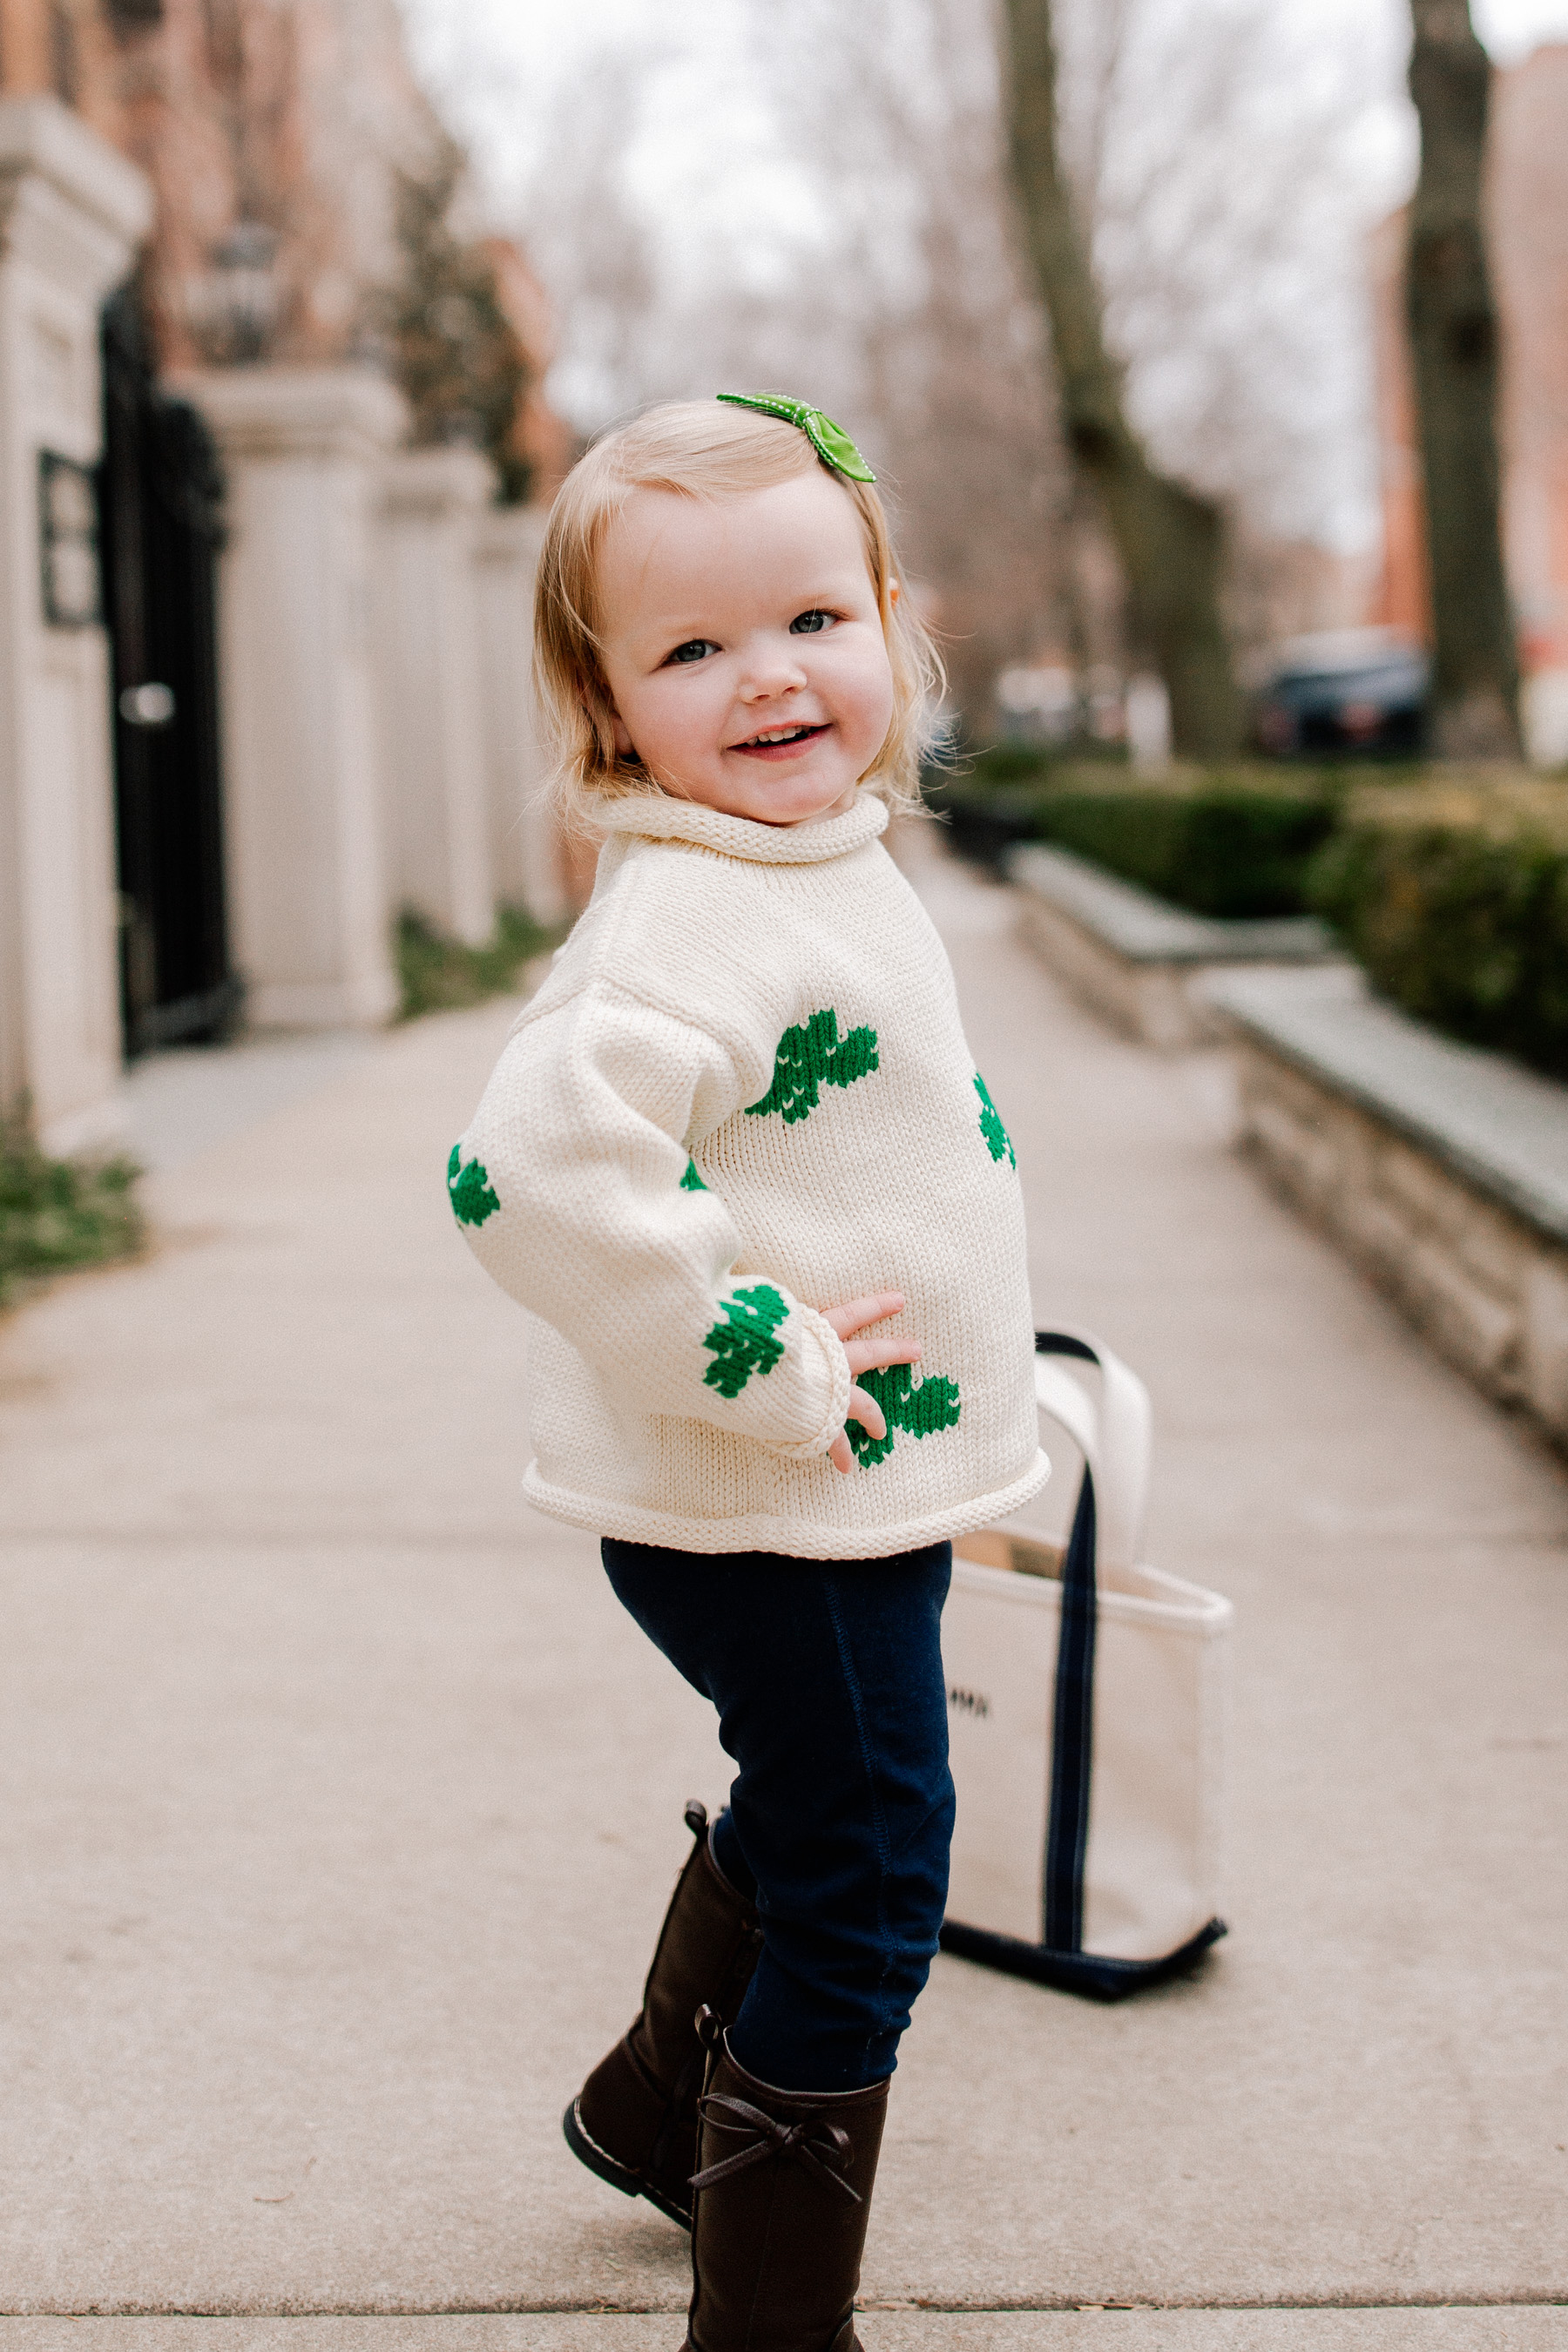 Emma's Outfit: Claver Shamrock Sweater / L.L. Bean Tote c/o / Gap Kids Jeggings  / Janie & Jack Sunglasses / Little Makes Big Bow c/o